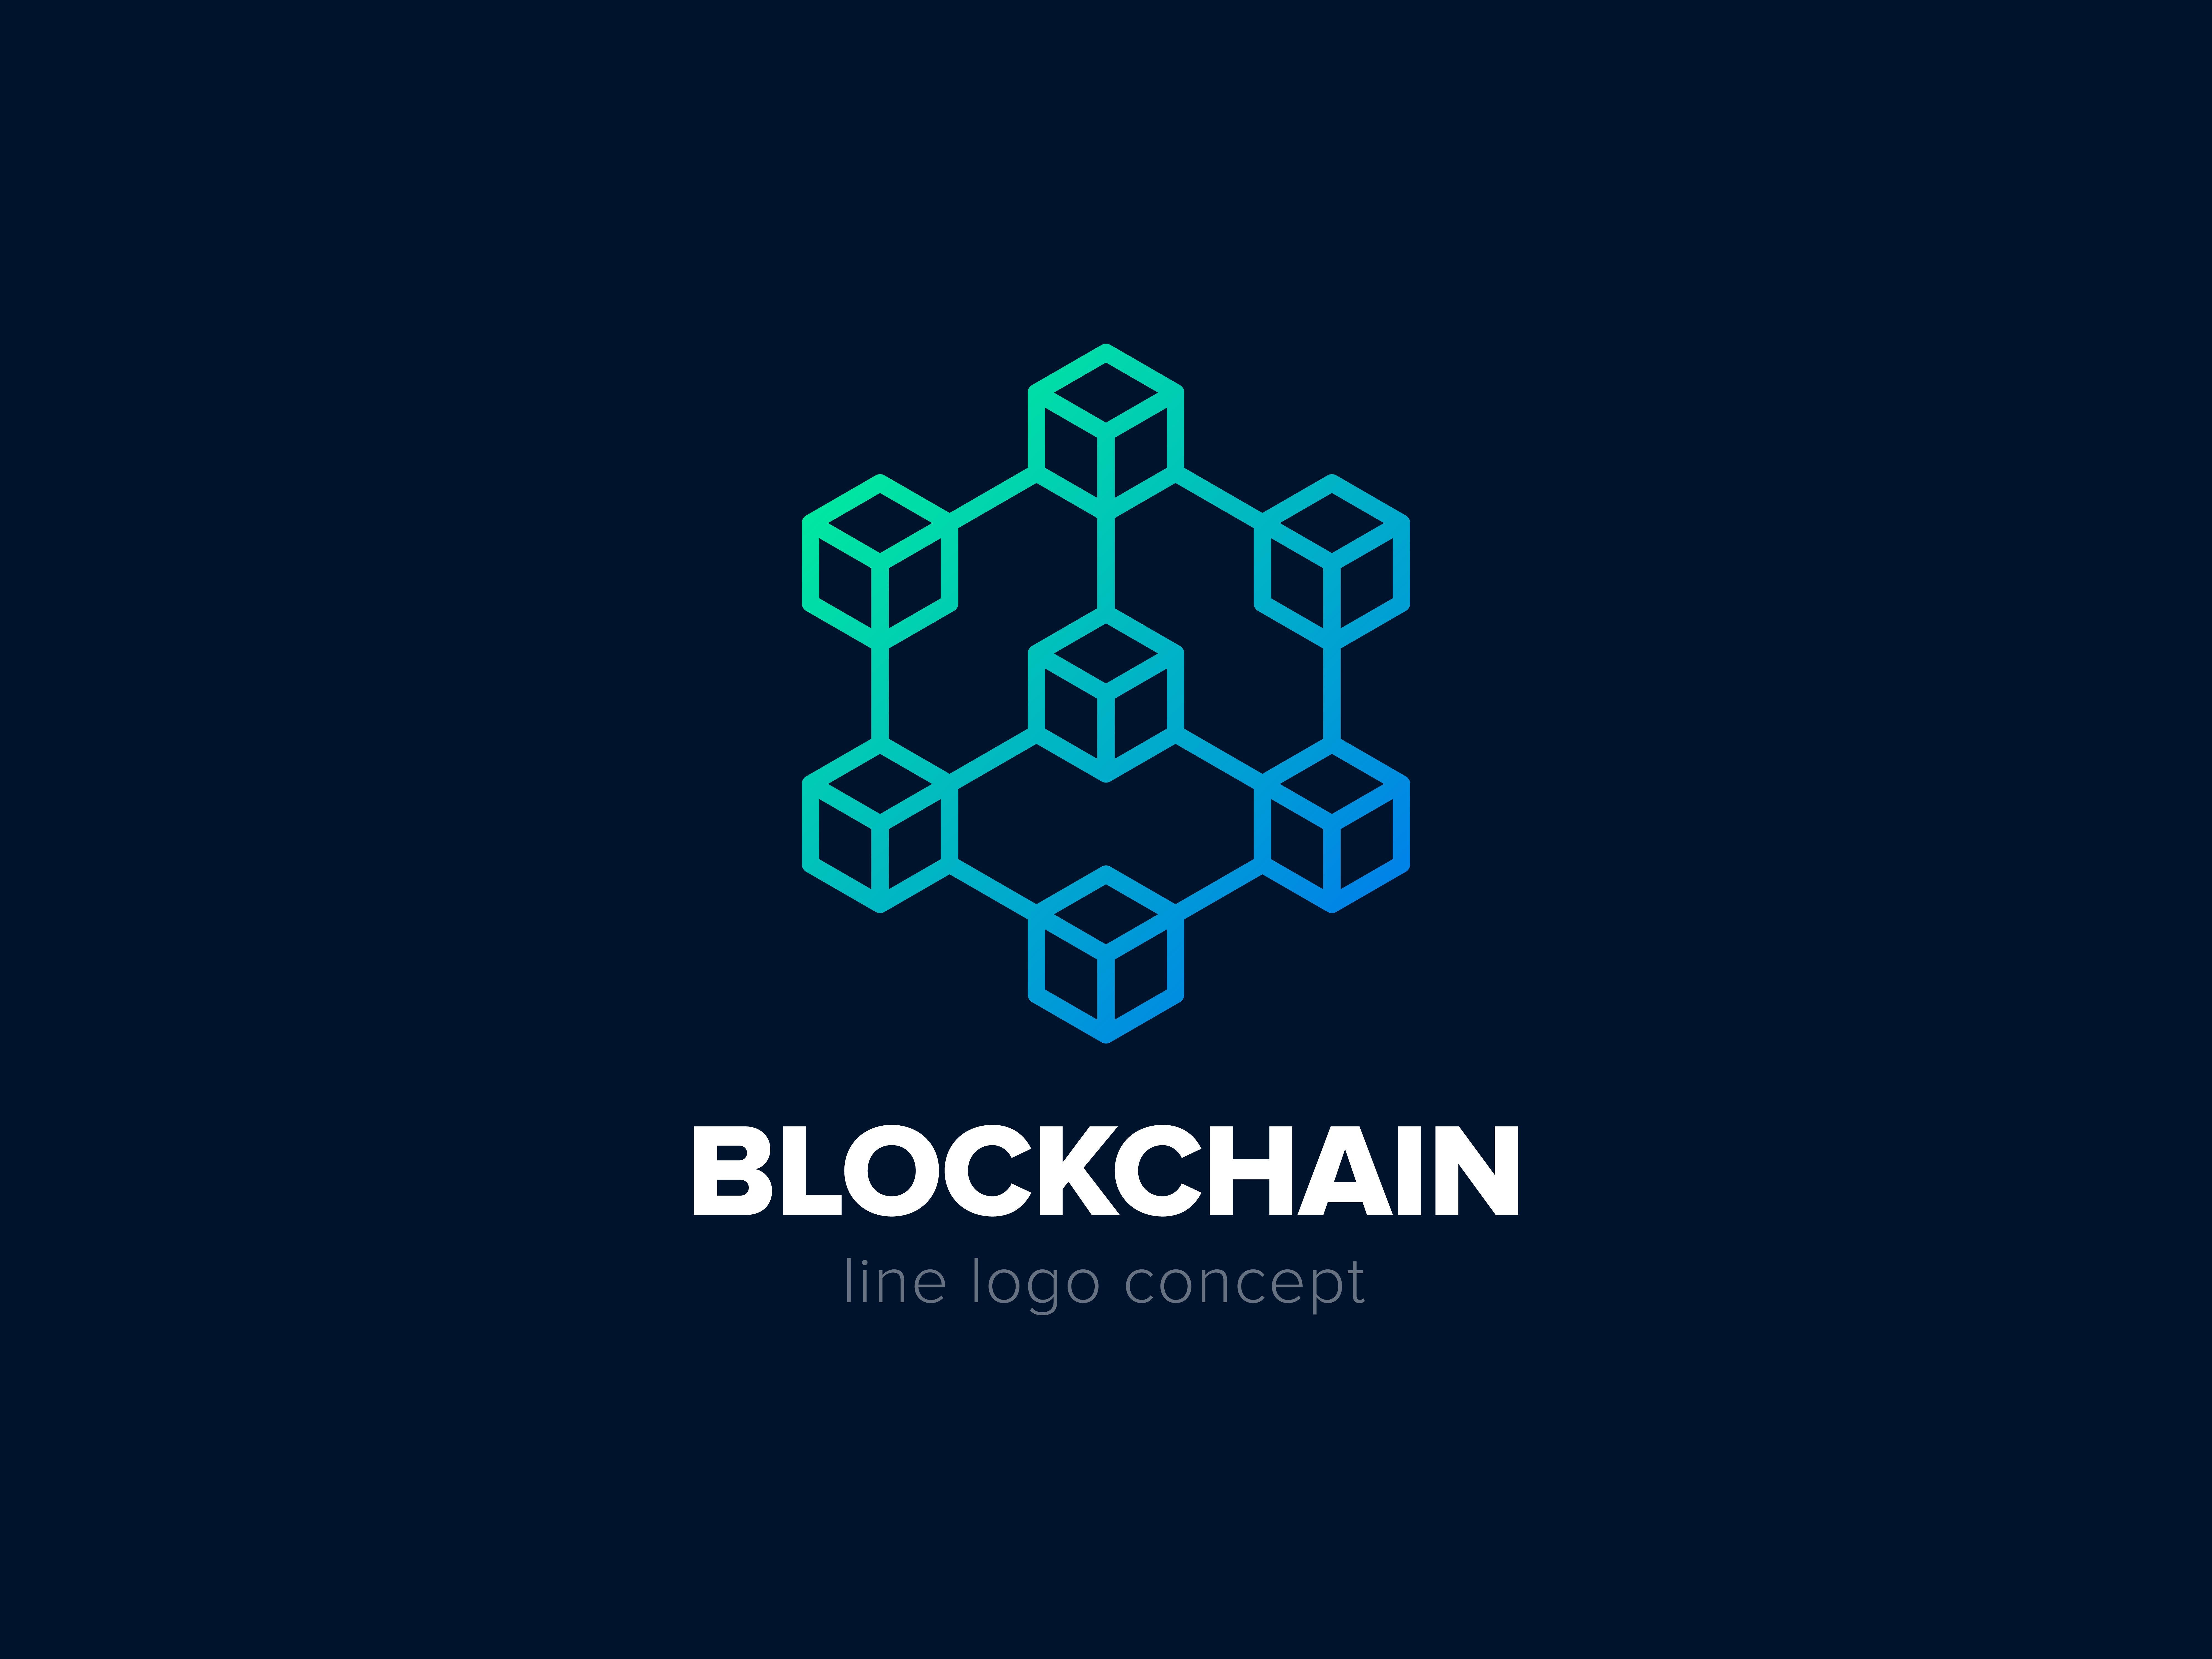 Blockchain Training in Dublin for Beginners-Bitcoin training(June 19-July 5)-introduction to cryptocurrency-ico-ethereum-hyperledger(Weekday course)